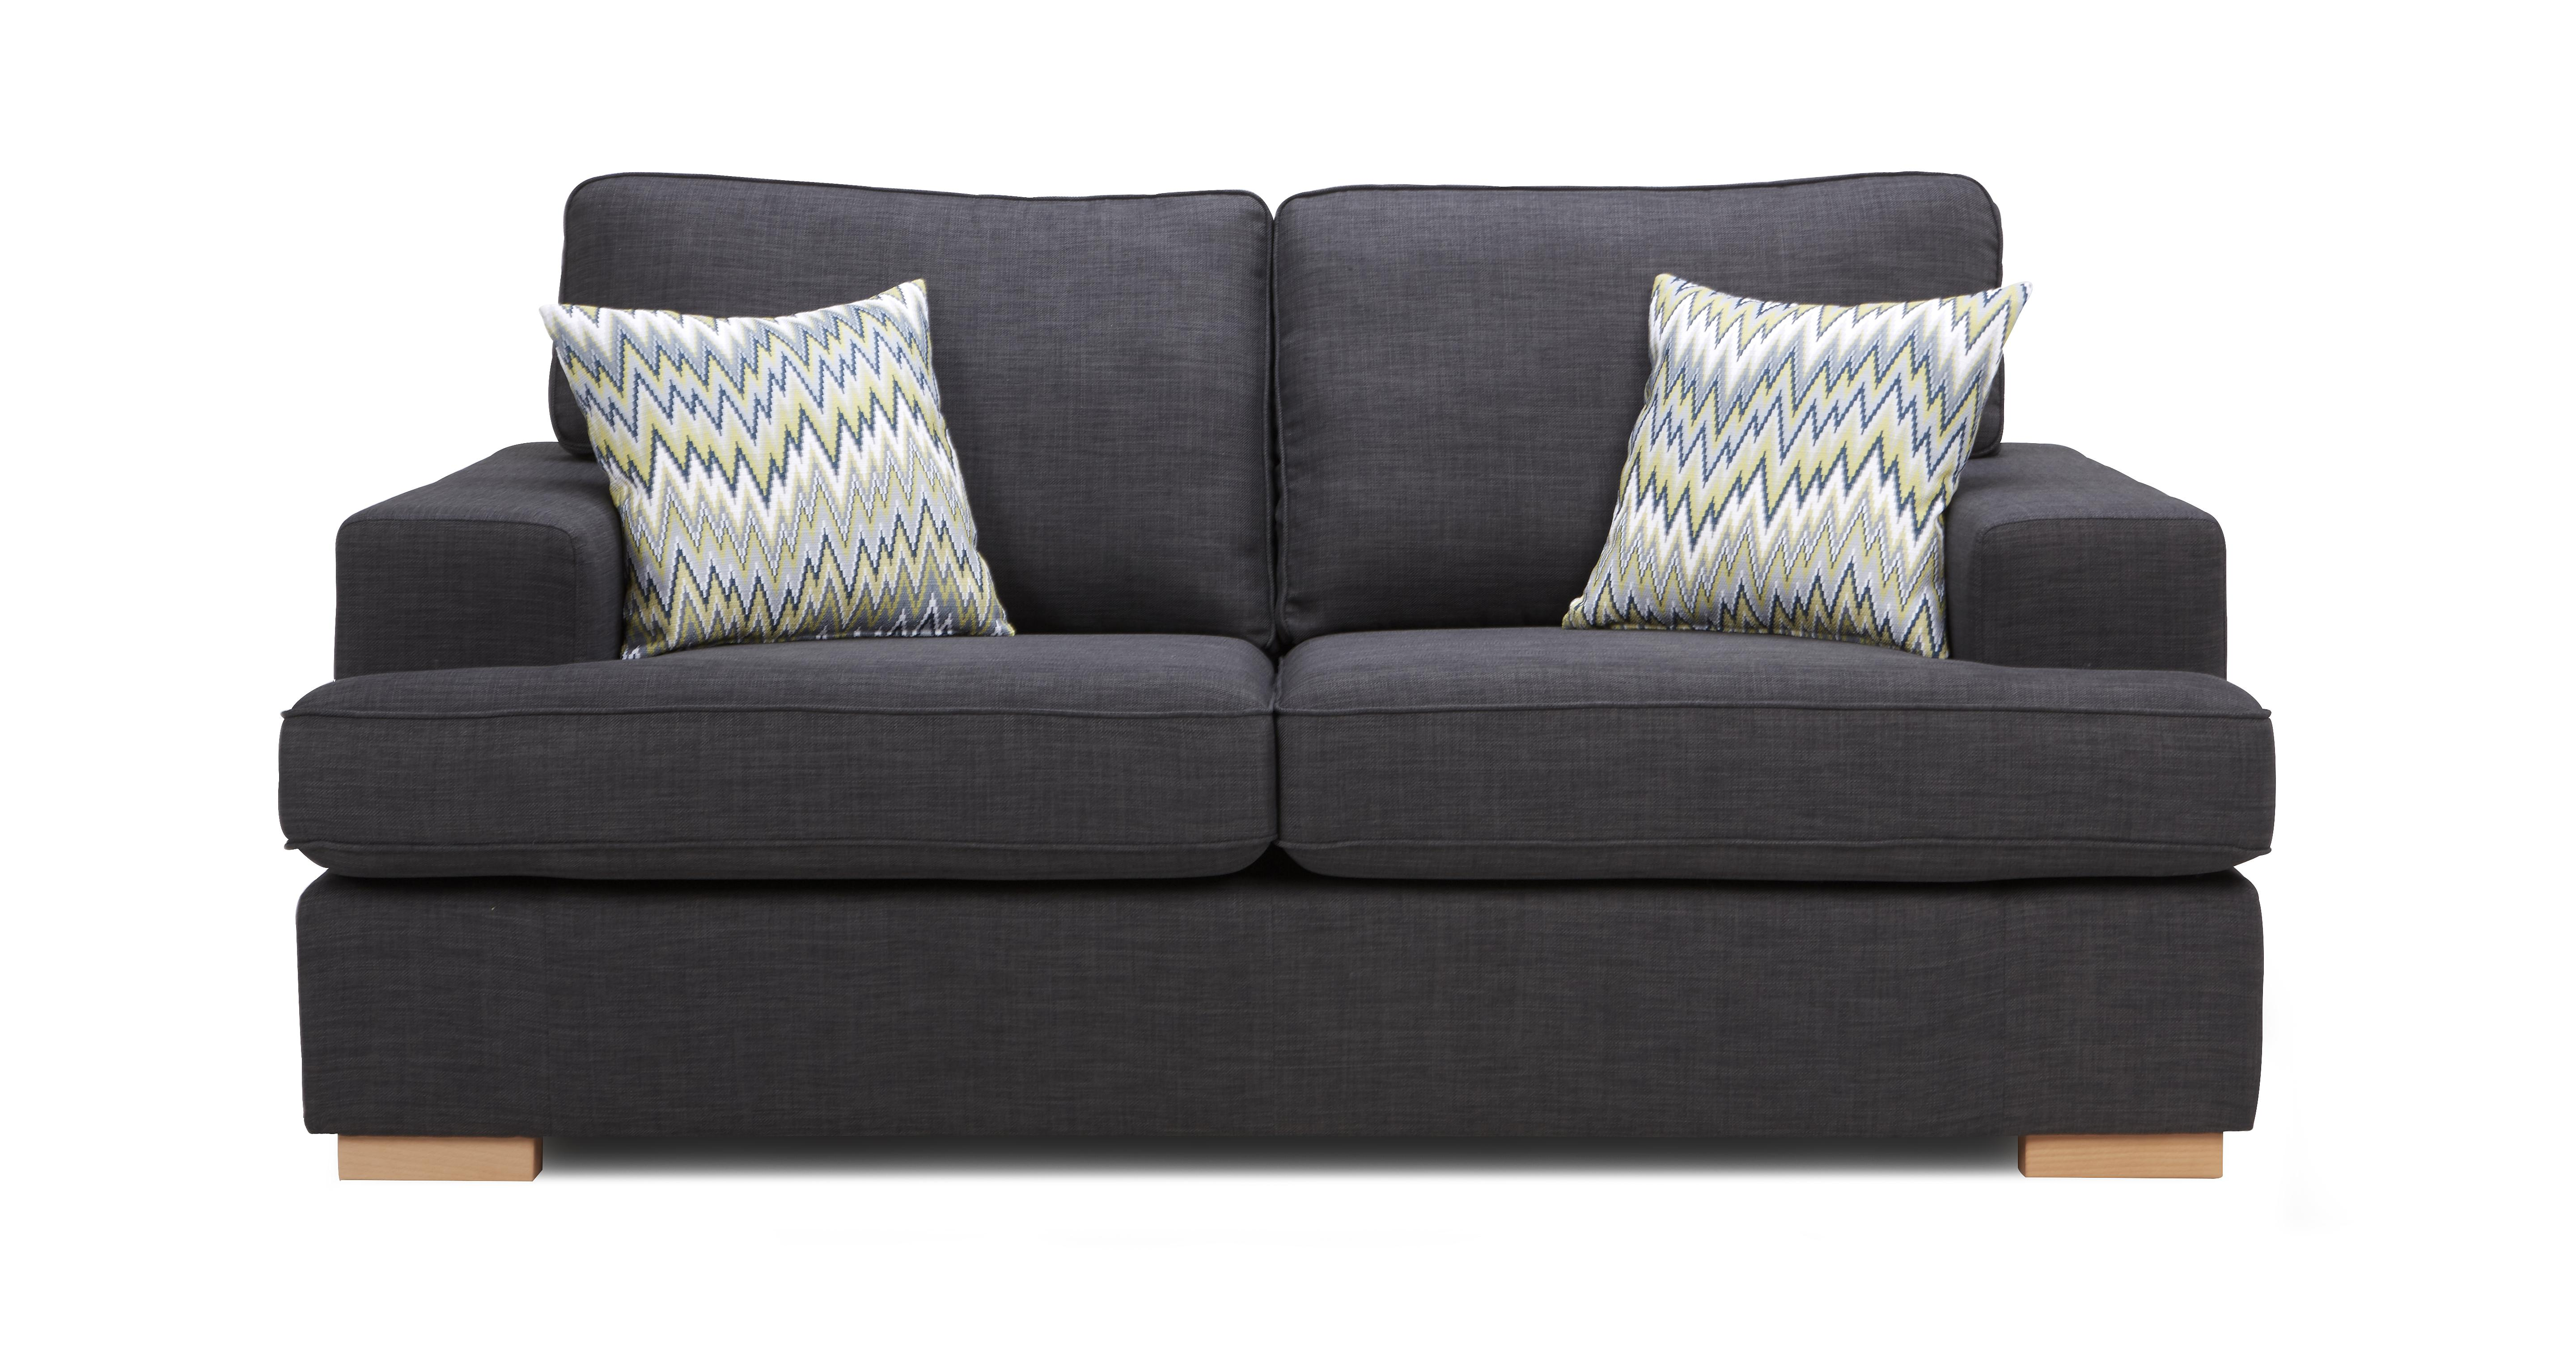 Ludo 2 Seater Sofa Bed Revive Dfs